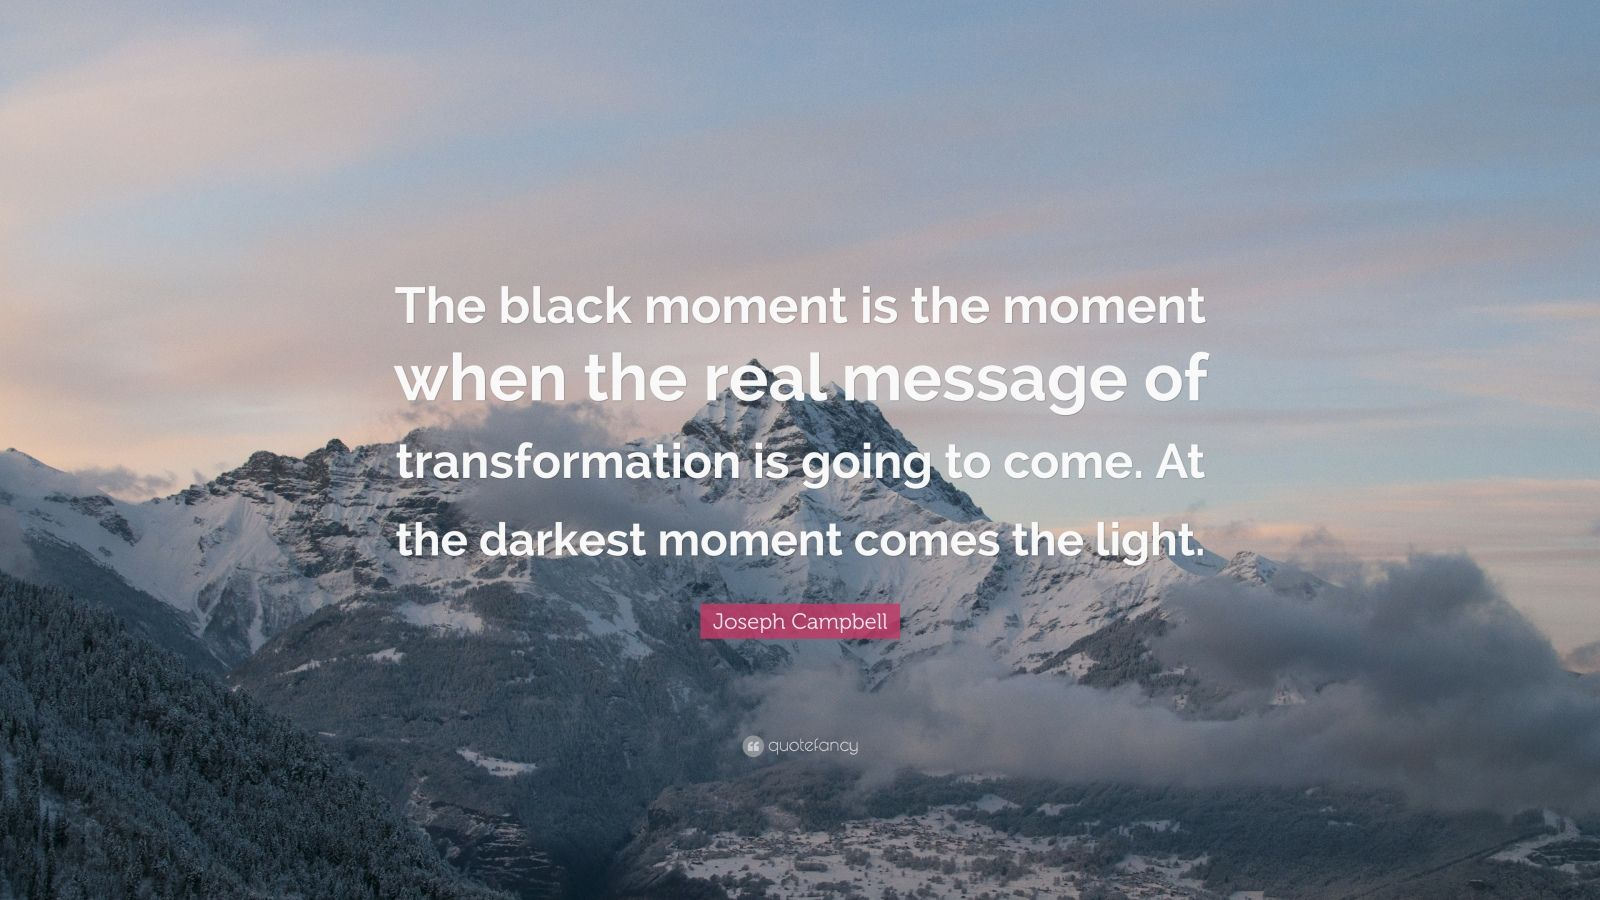 """Joseph Campbell Quote: """"The black moment is the moment when the real message of transformation is going to come. At the darkest moment comes the light."""""""